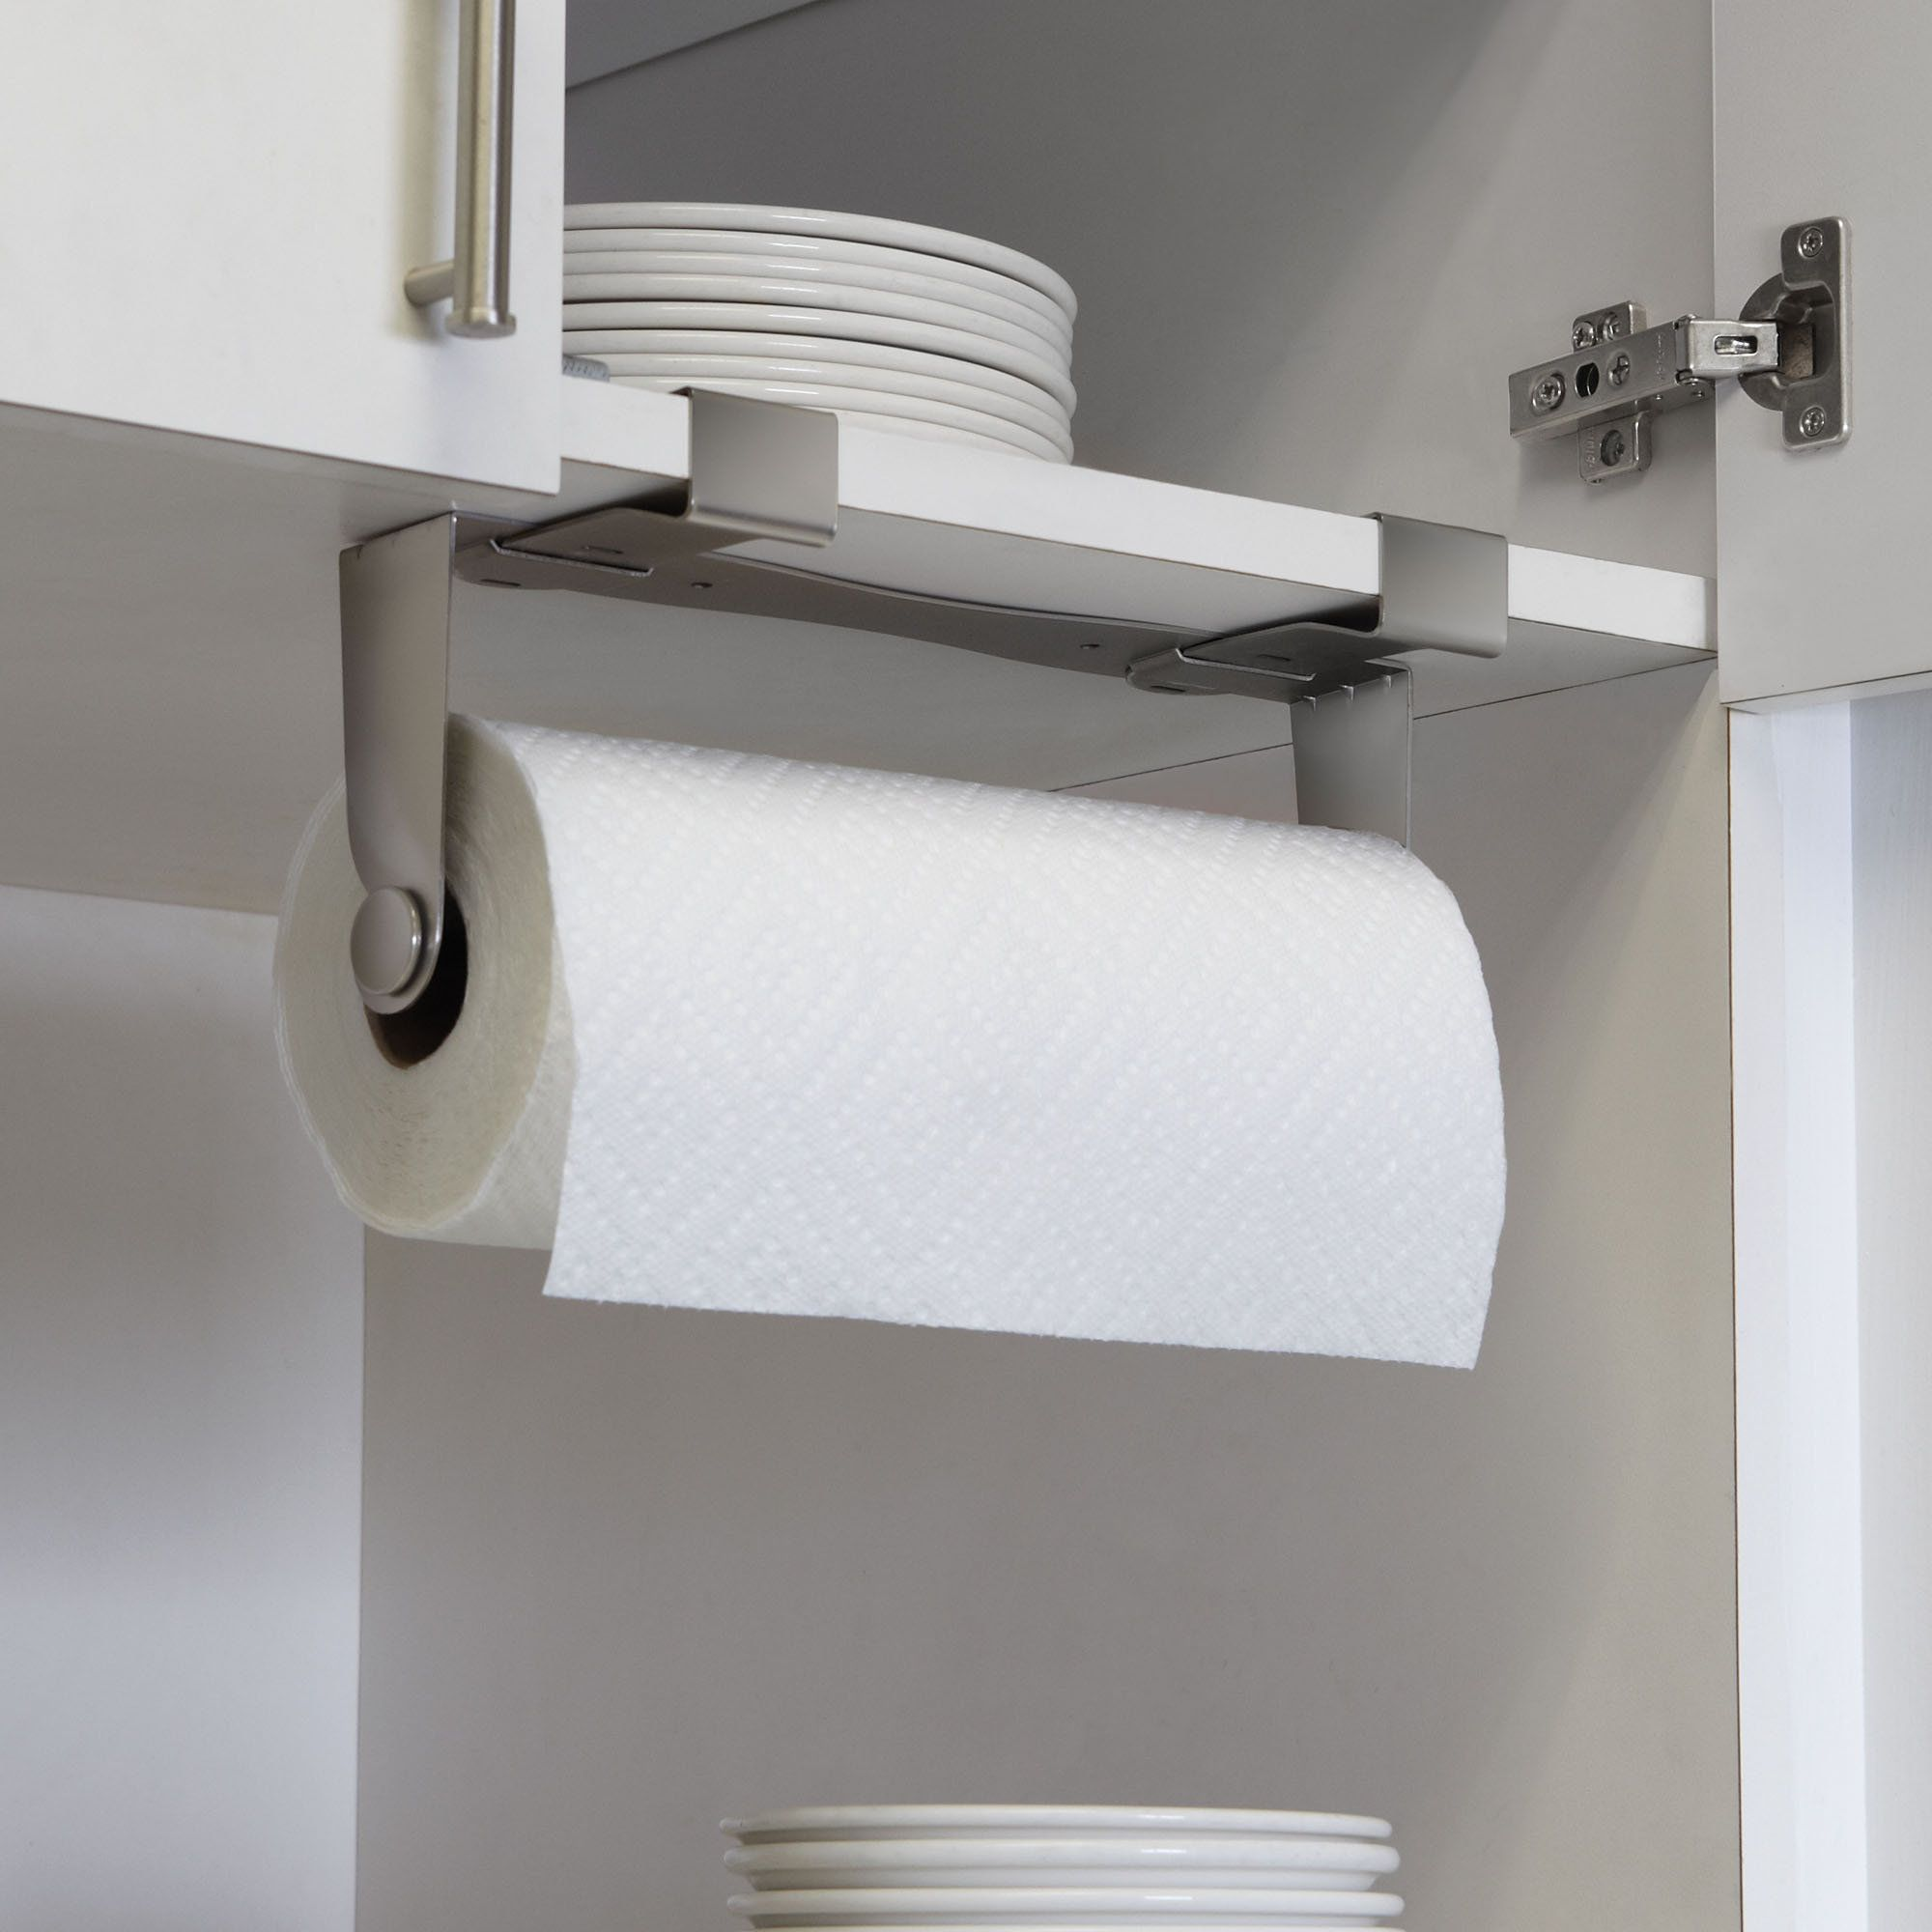 Mountie Paper Towel Holder | Paper towel holders, Towel holders ...